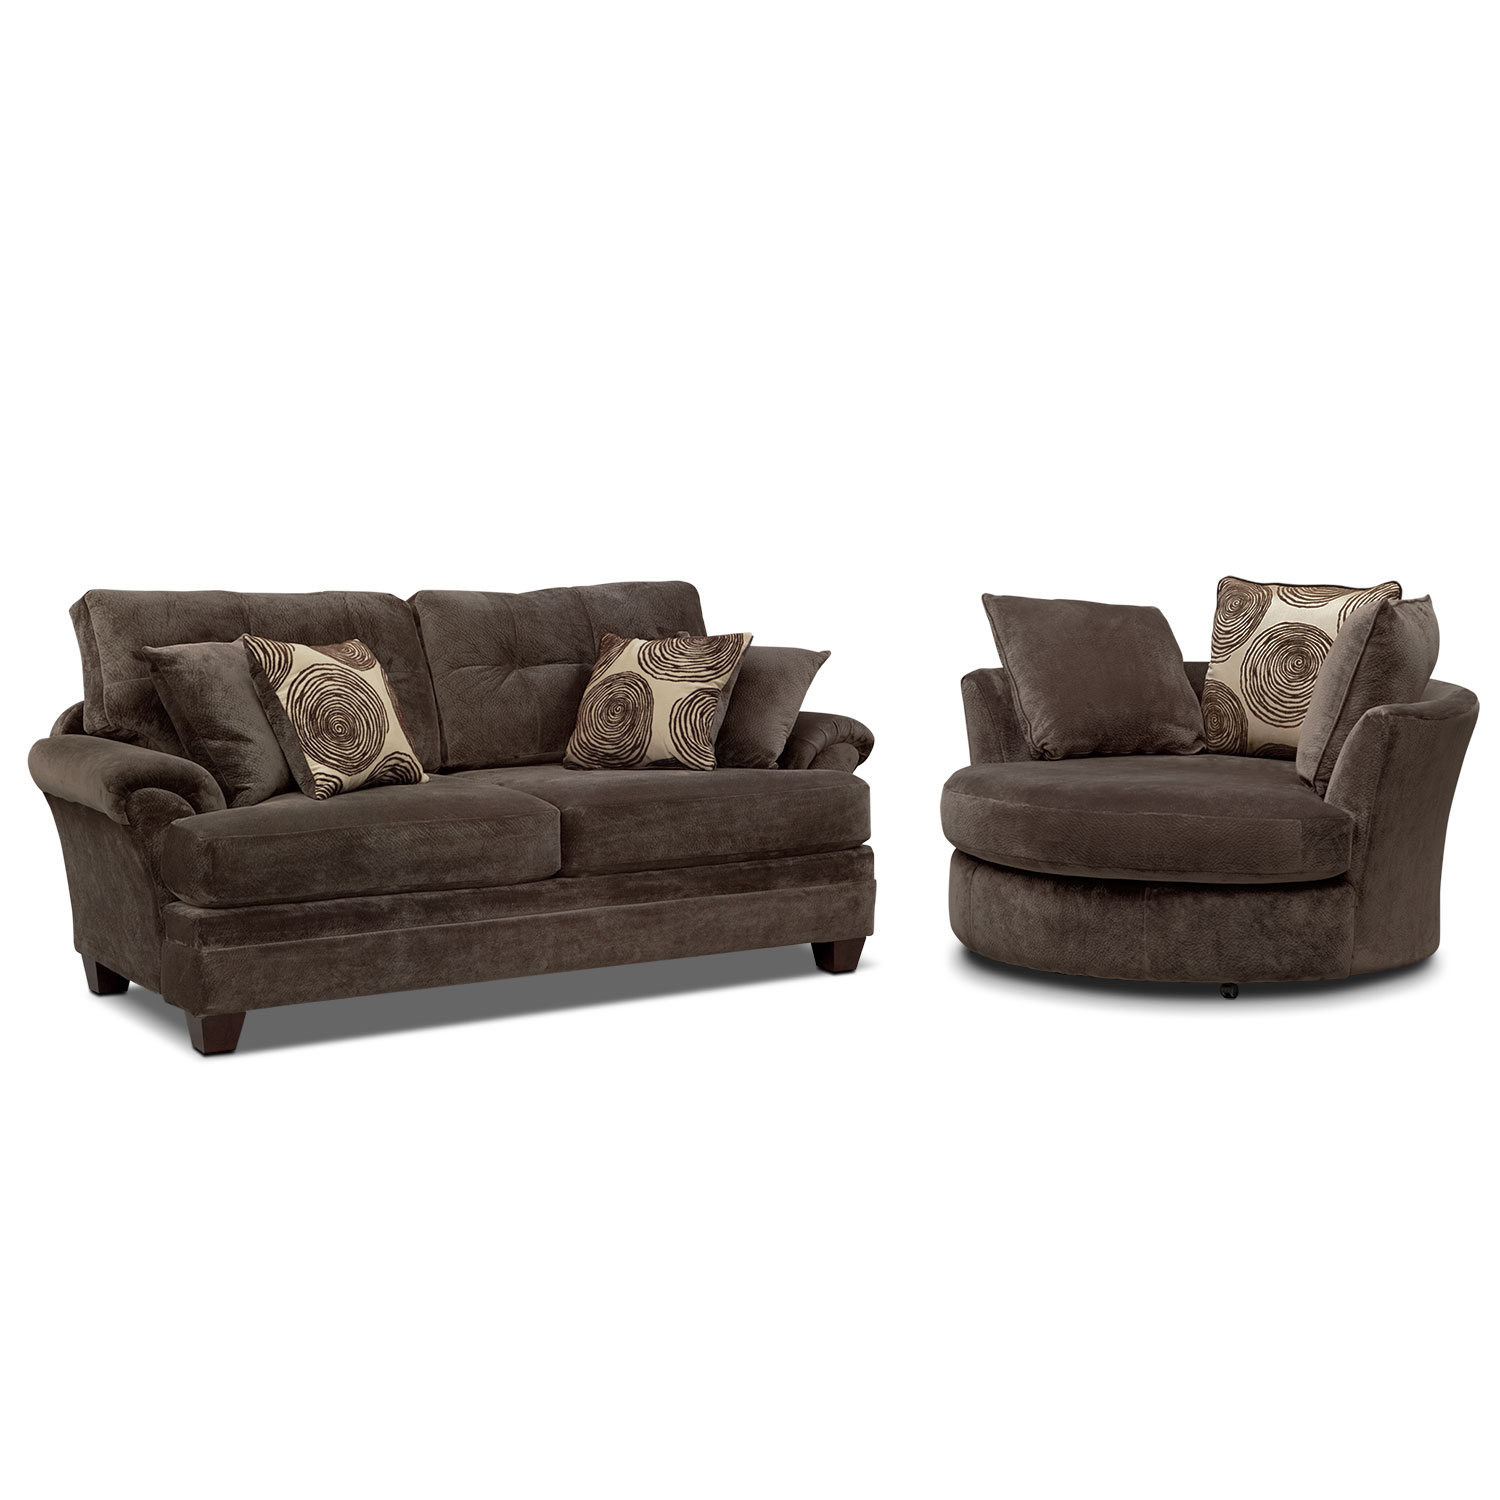 Cordelle Sofa And Swivel Chair Set | Value City Furniture And Mattresses Pertaining To Chocolate Brown Leather Tufted Swivel Chairs (View 17 of 20)